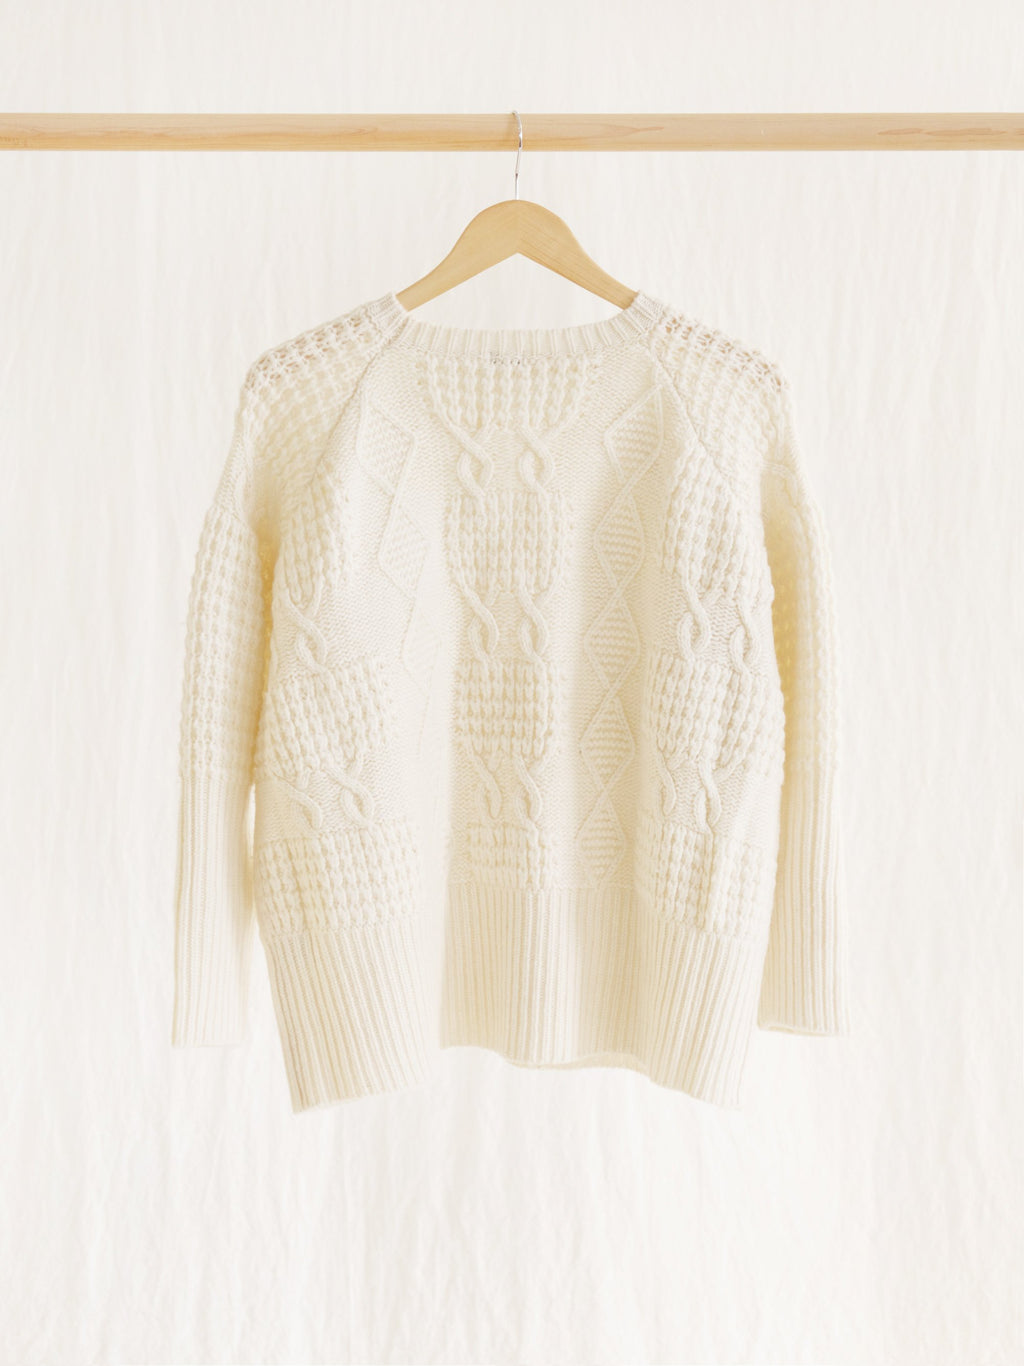 Namu Shop - Ichi Antiquites Patchwork Knit Pullover